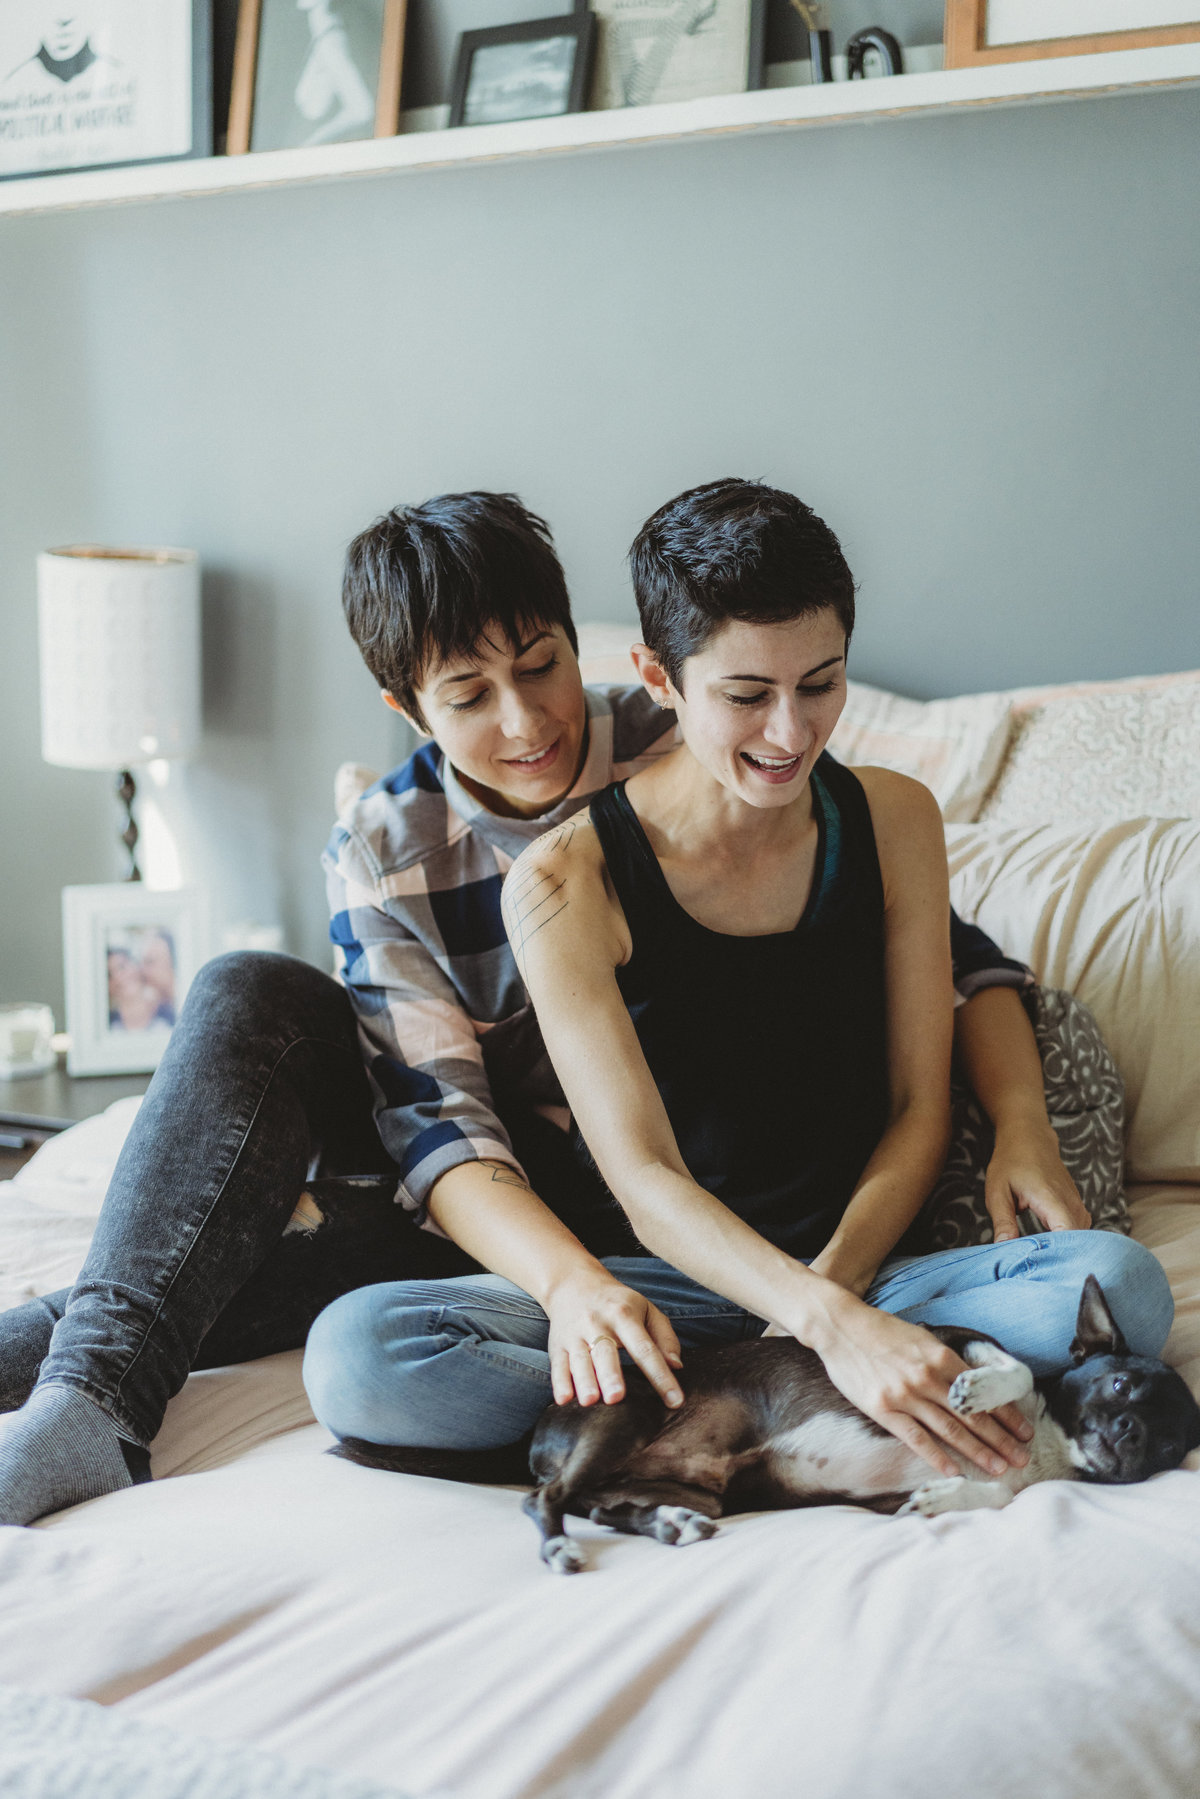 LESBIAN IN HOME COUPLES PHOTOGRAPHY SESSION